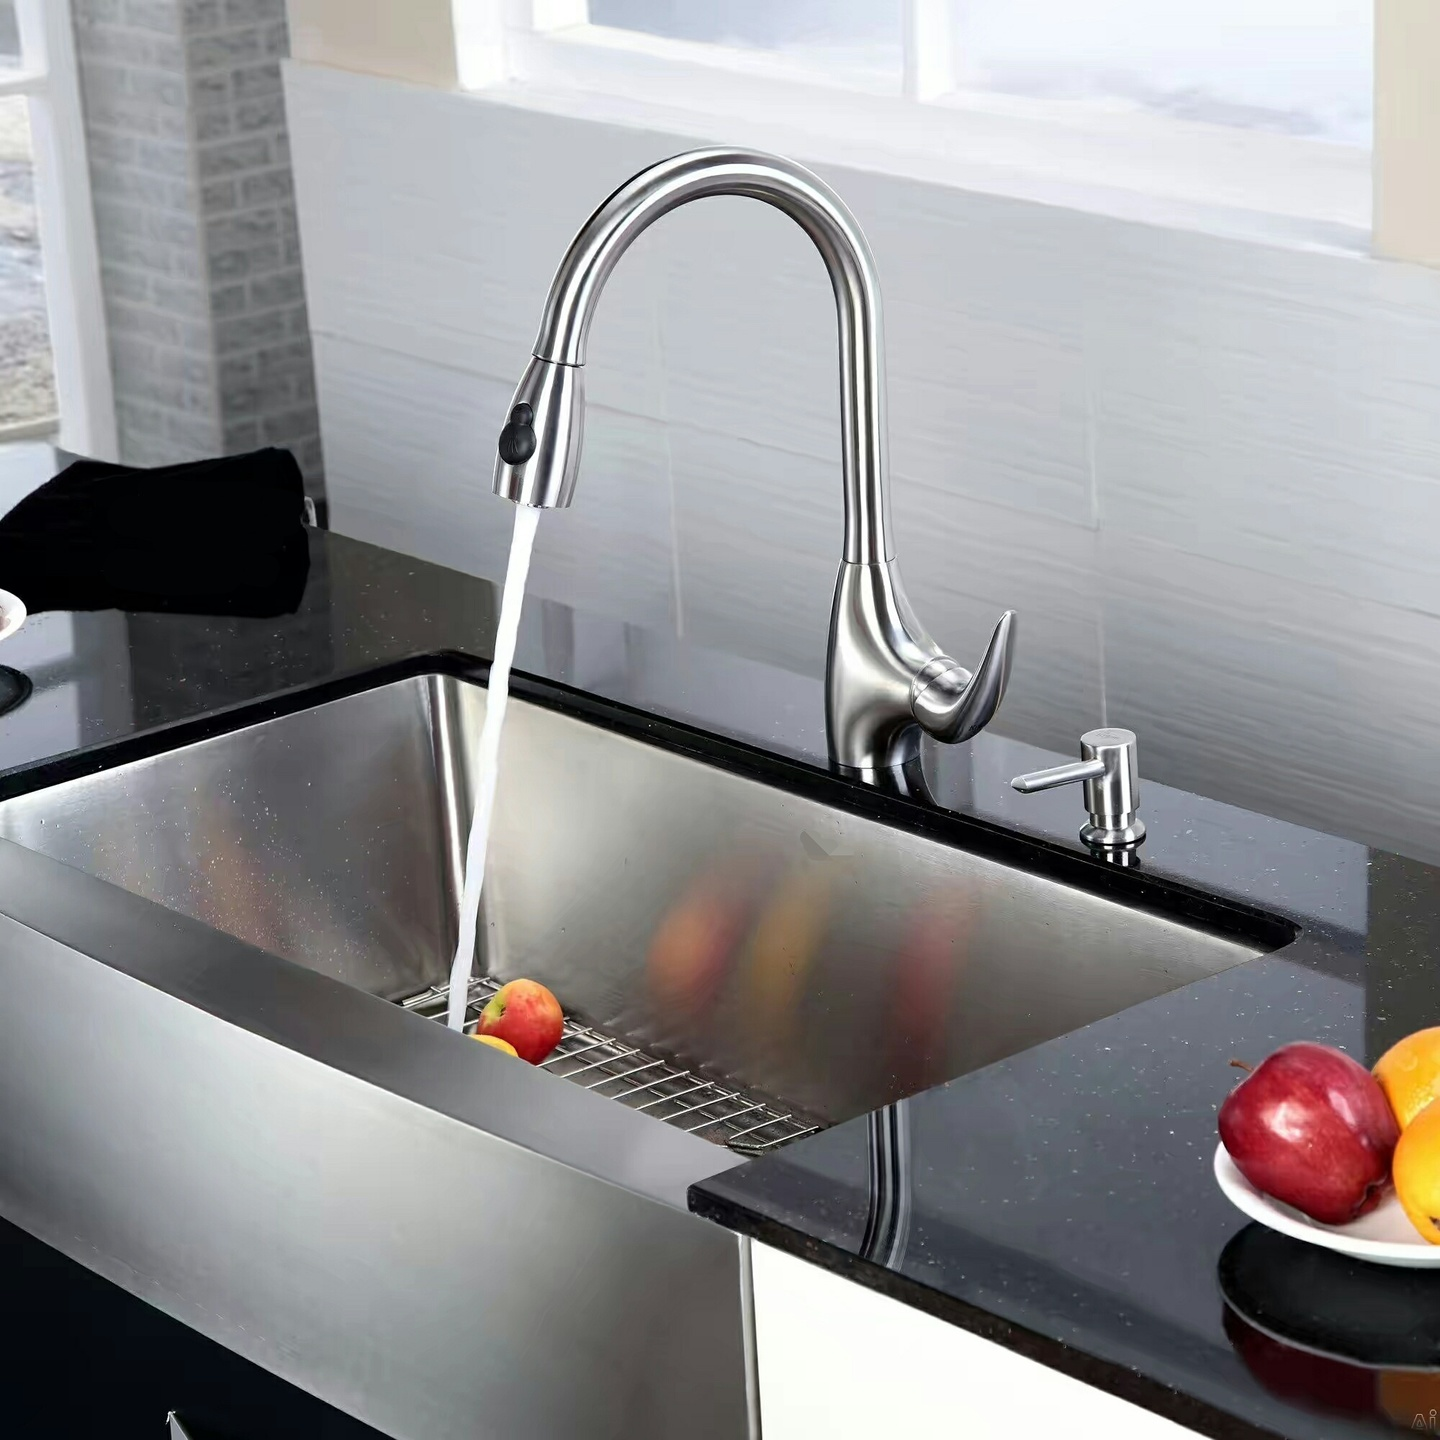 rv kitchen sink single lever faucet 厨房水槽的安装方式 知乎